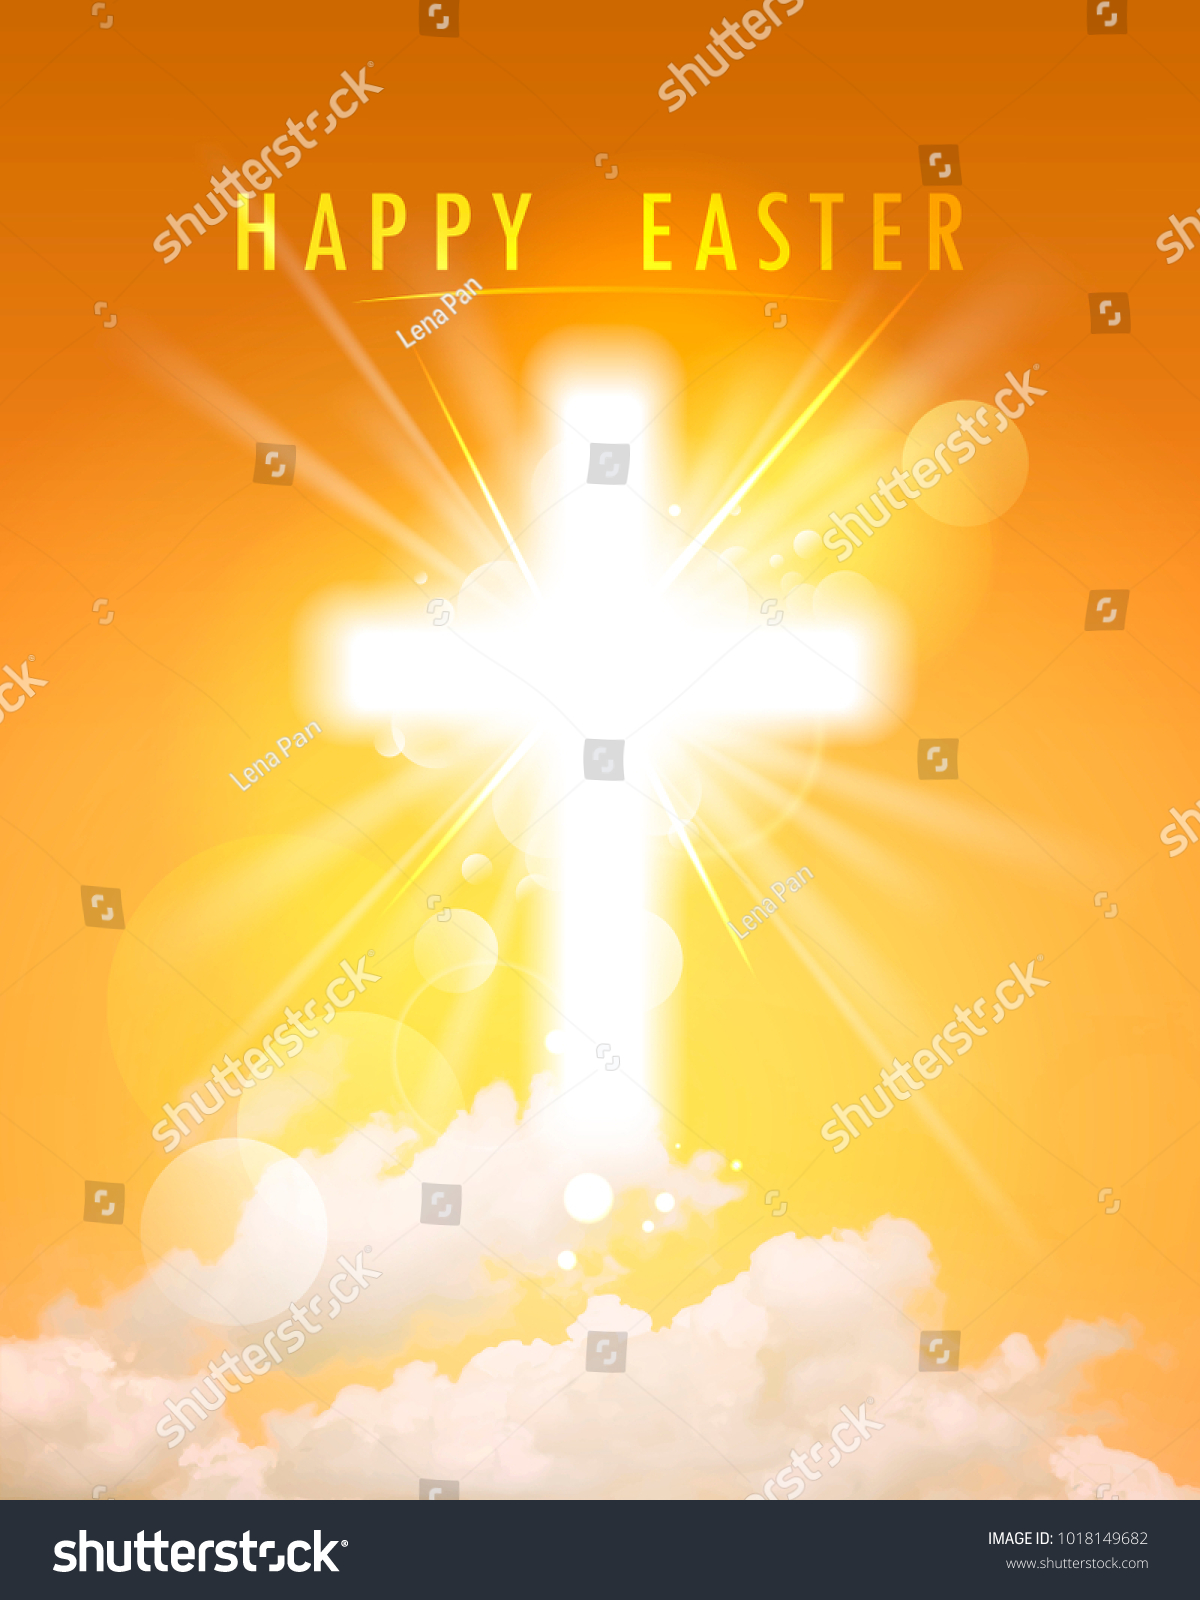 Happy Easter Religious Card Shining Cross Stock Vector Royalty Free